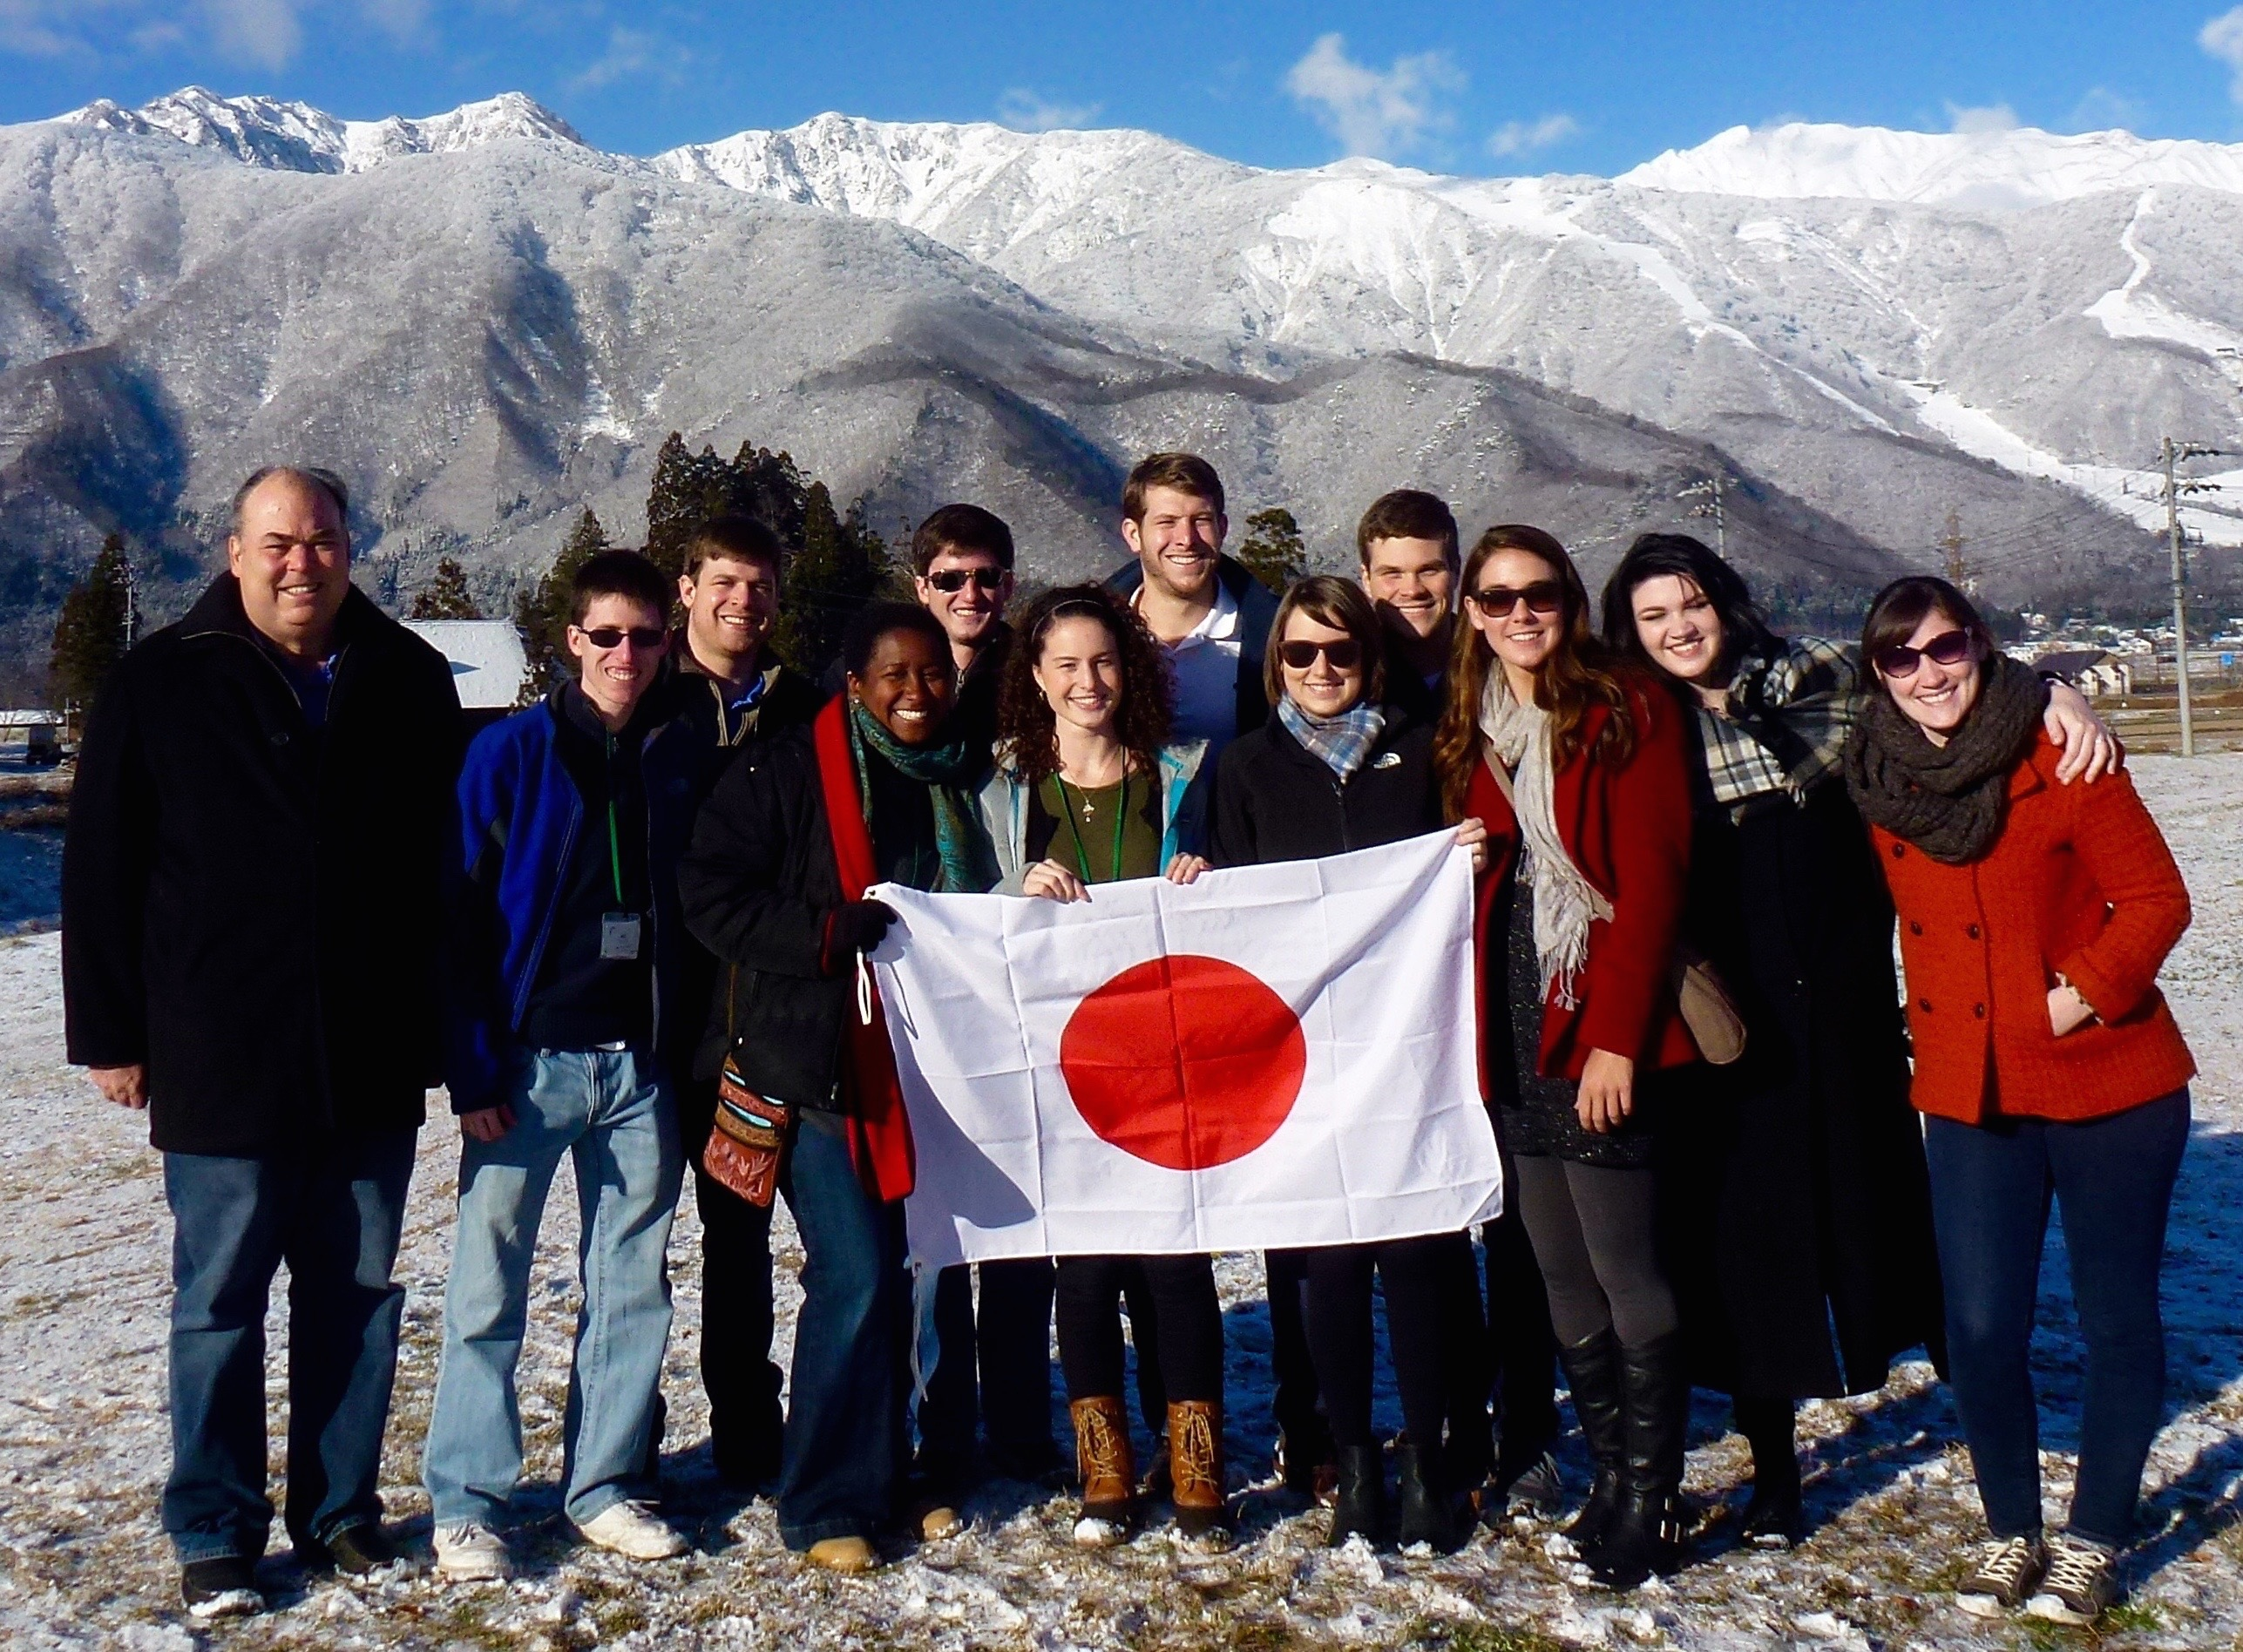 In Japan's Northern Alps